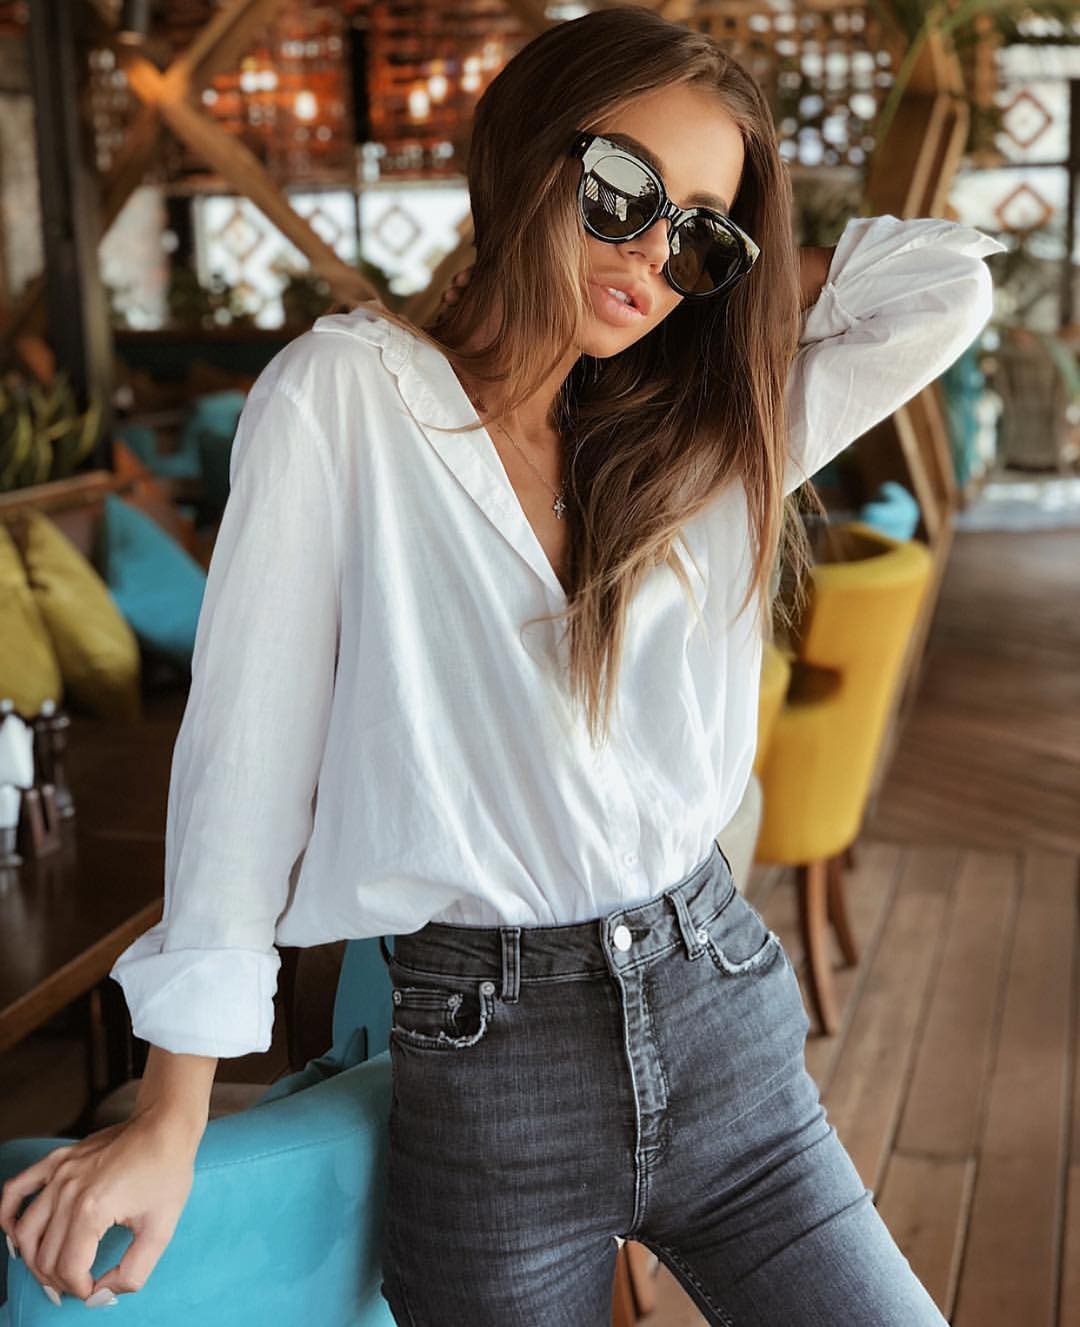 White Linen Oversized Shirt Tucked In High Rise Grey Jeans For Summer 2020